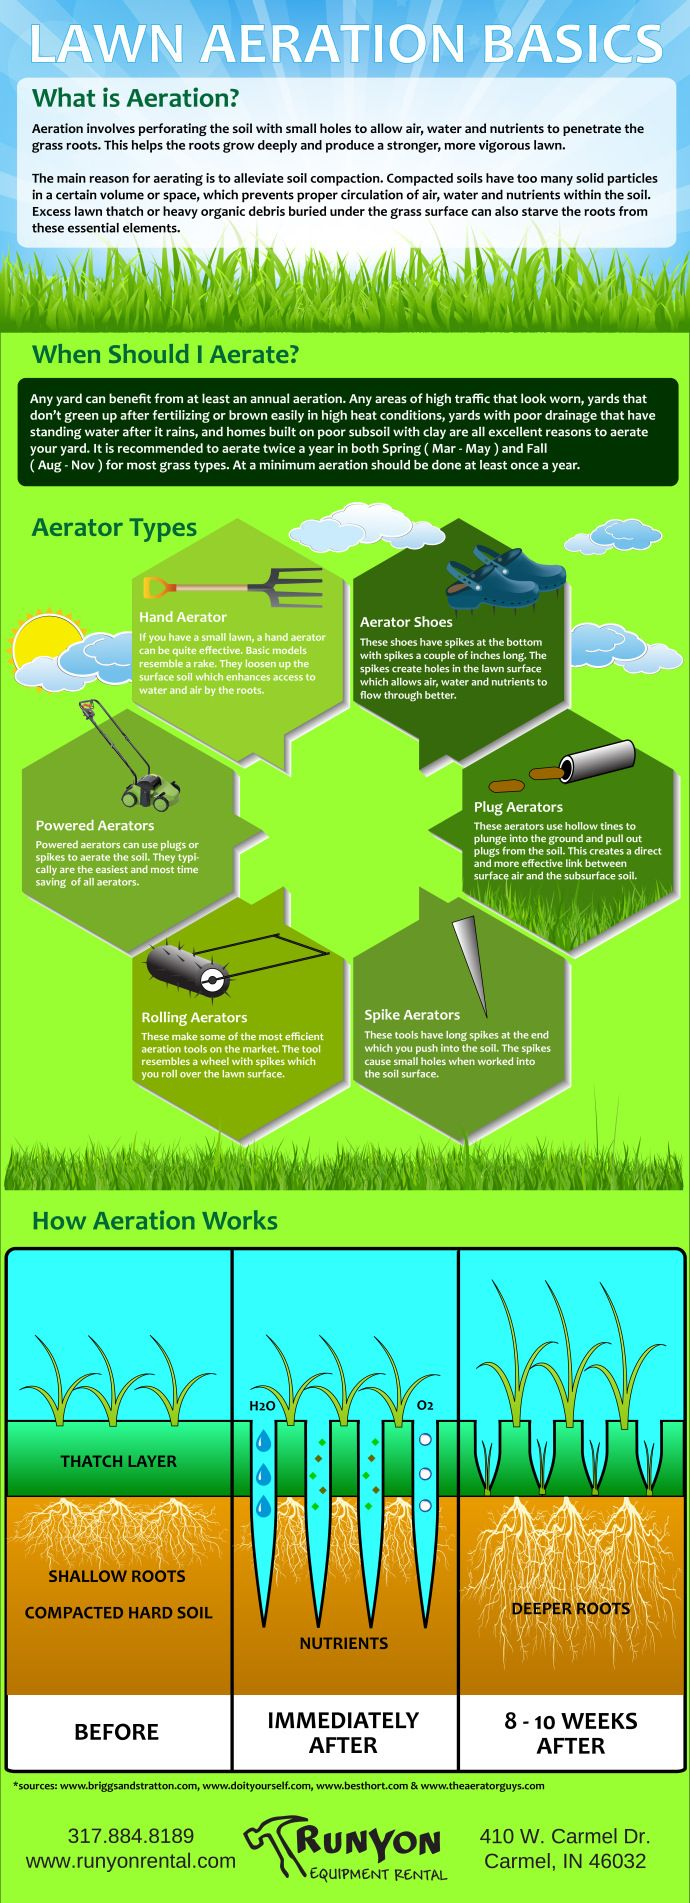 check out our new lawn care schedule for cool season grasses spring between and is the perfect time to consider aerating your lawn